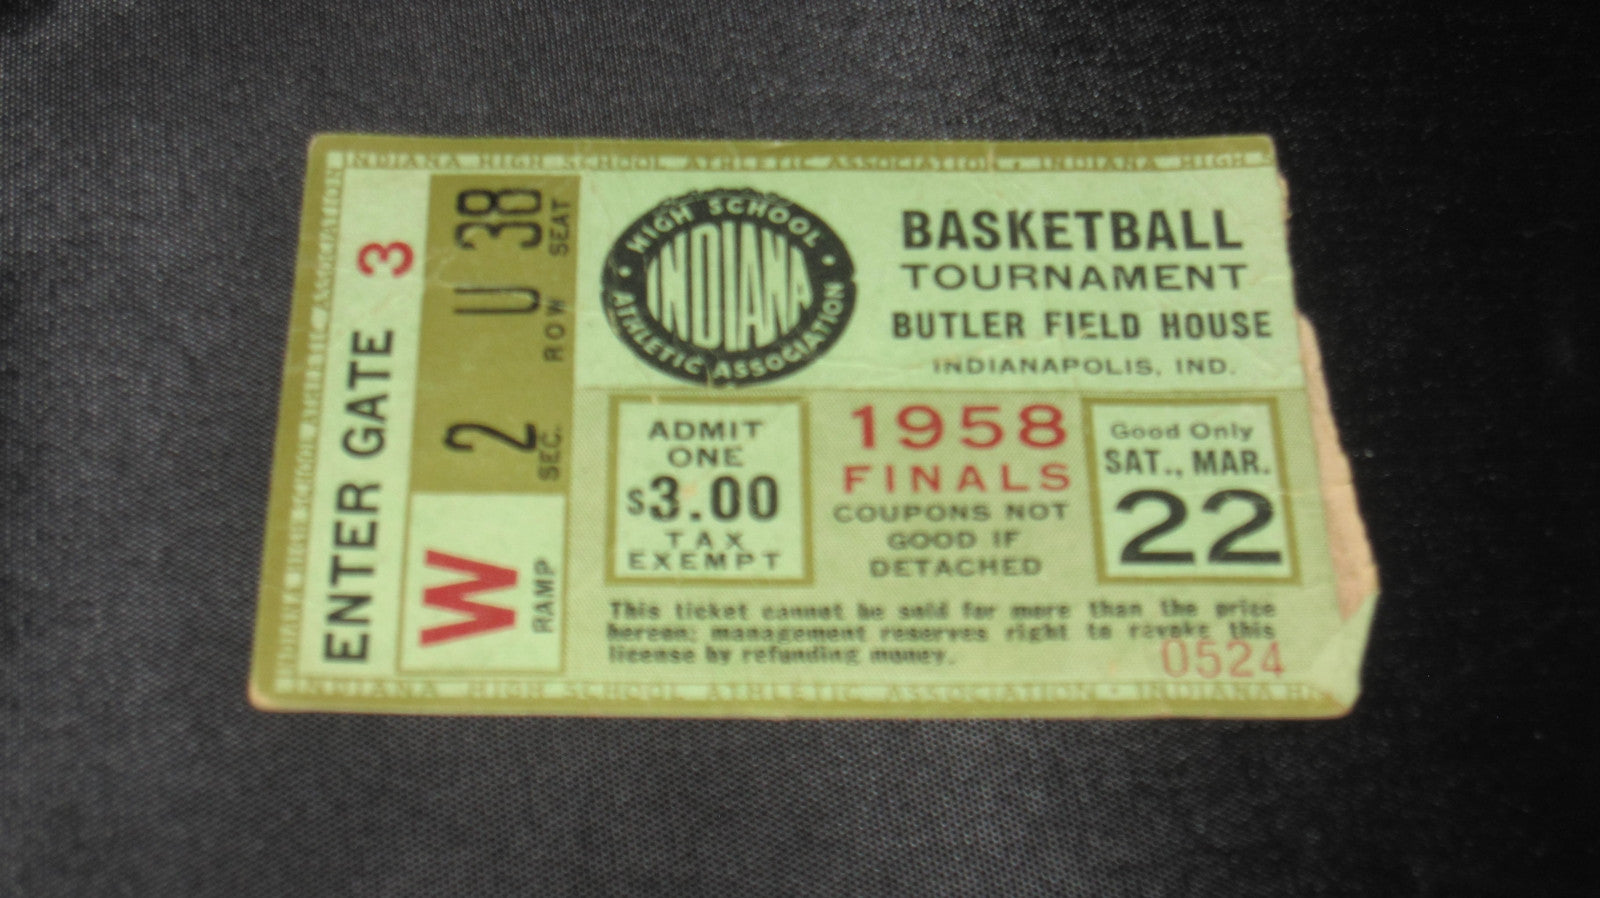 1958 Indiana High School Basketball State Finals Ticket Stub - Vintage Indy Sports